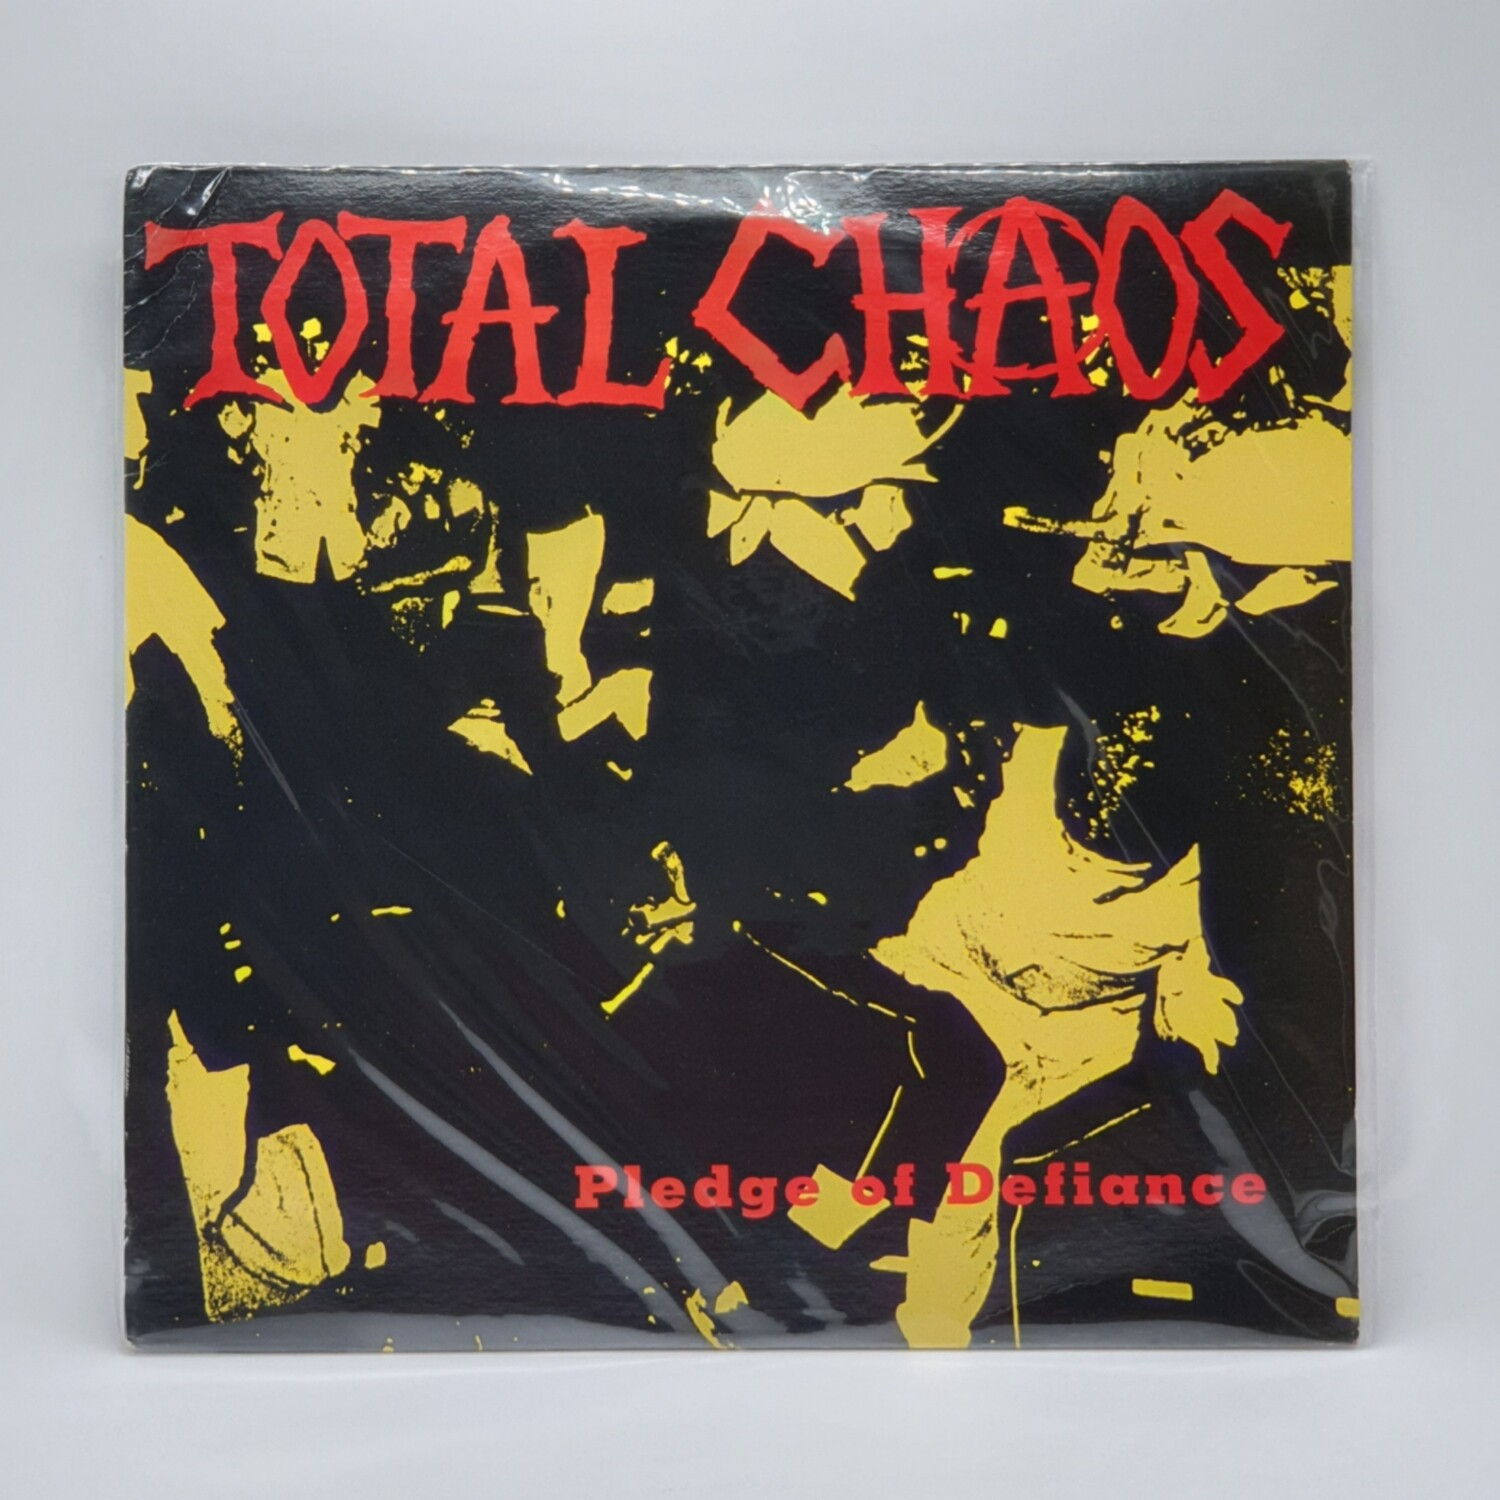 TOTAL CHAOS -PLEDGE OF DEFIANCE- LP